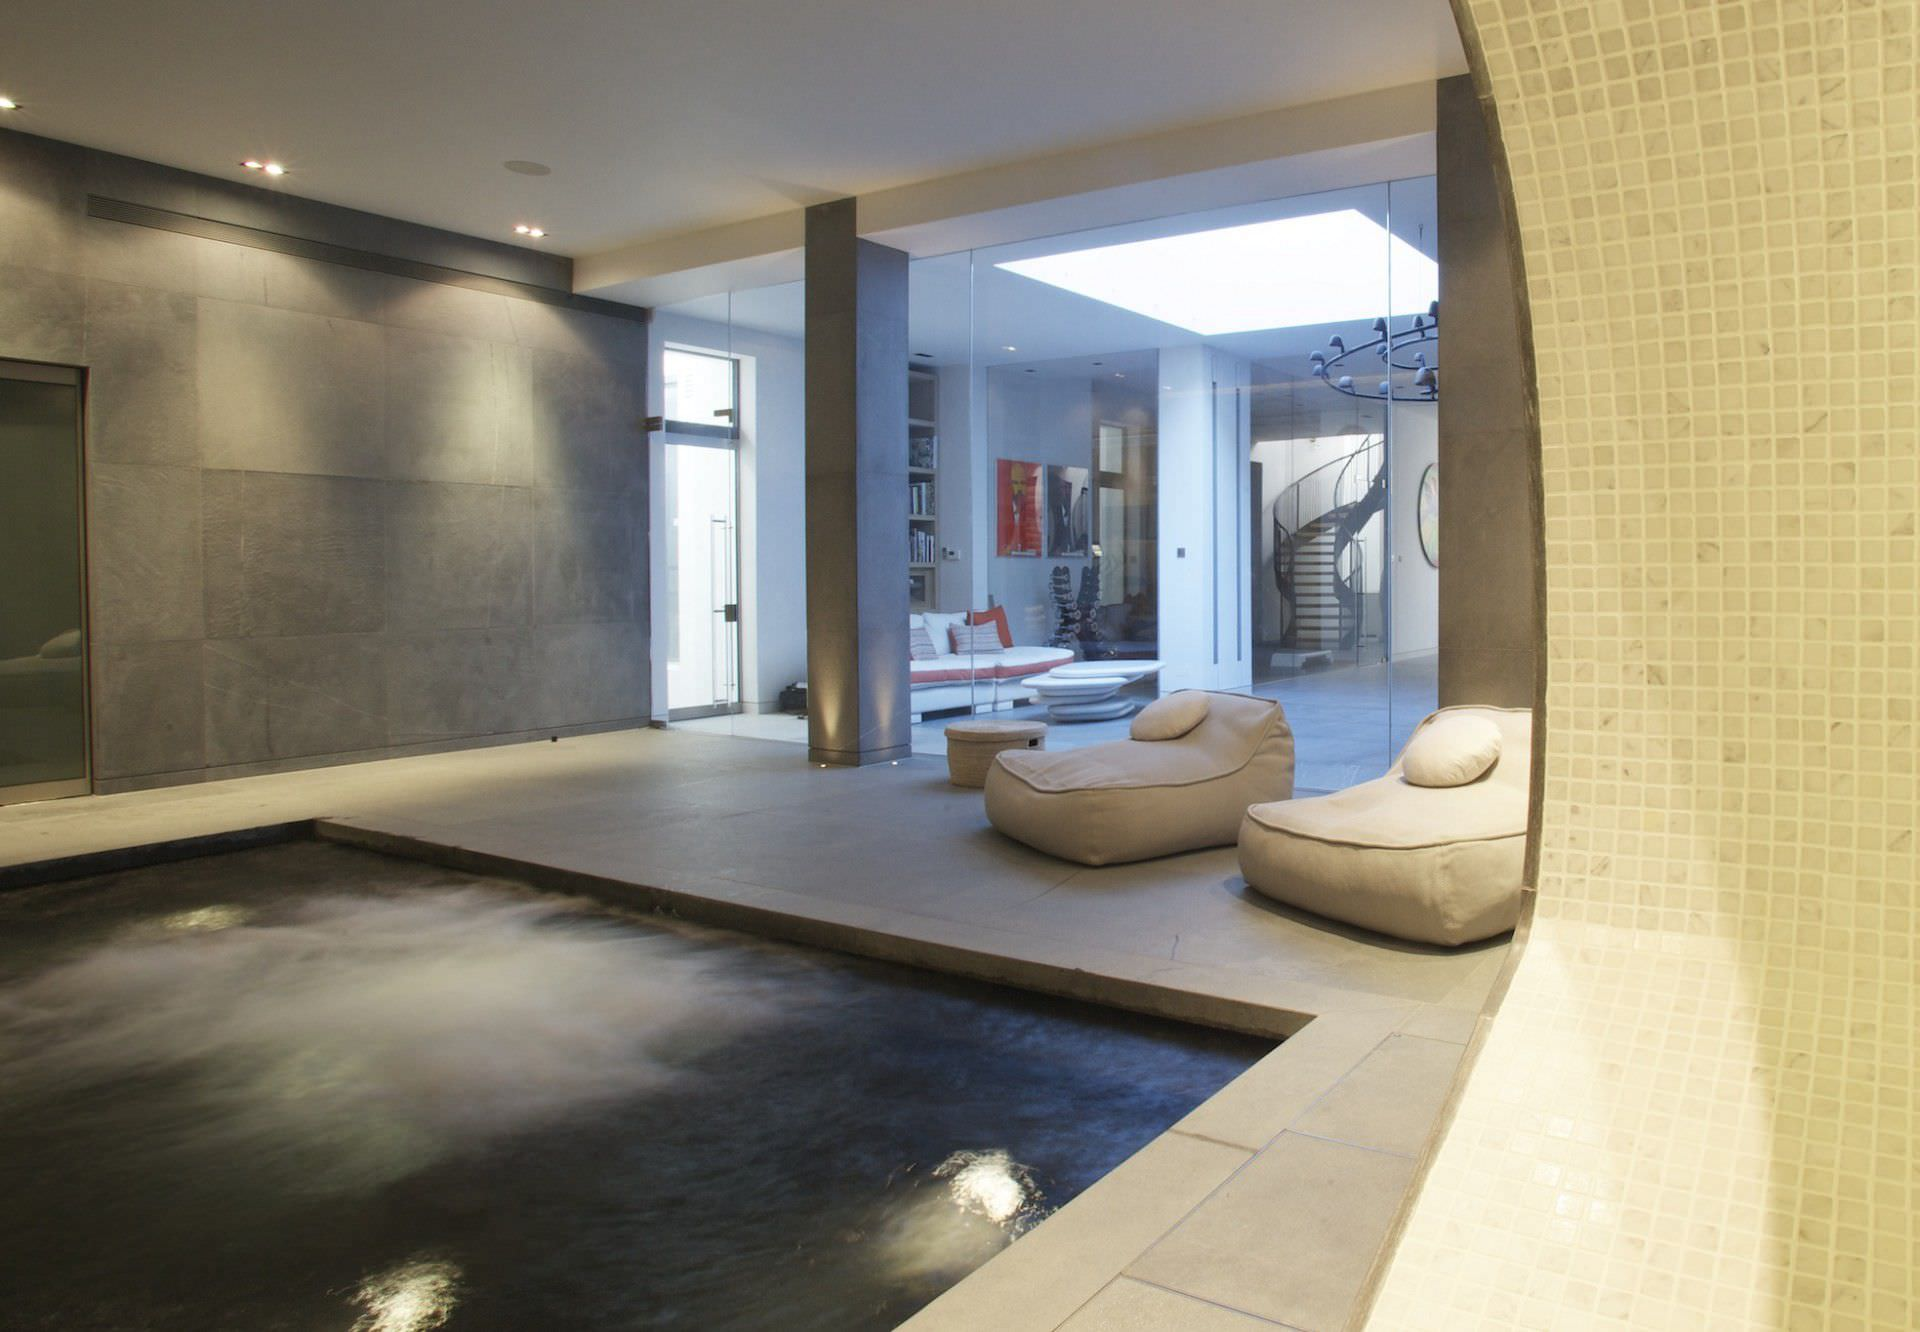 in-ground swimming pool / concrete / indoor - london - guncast